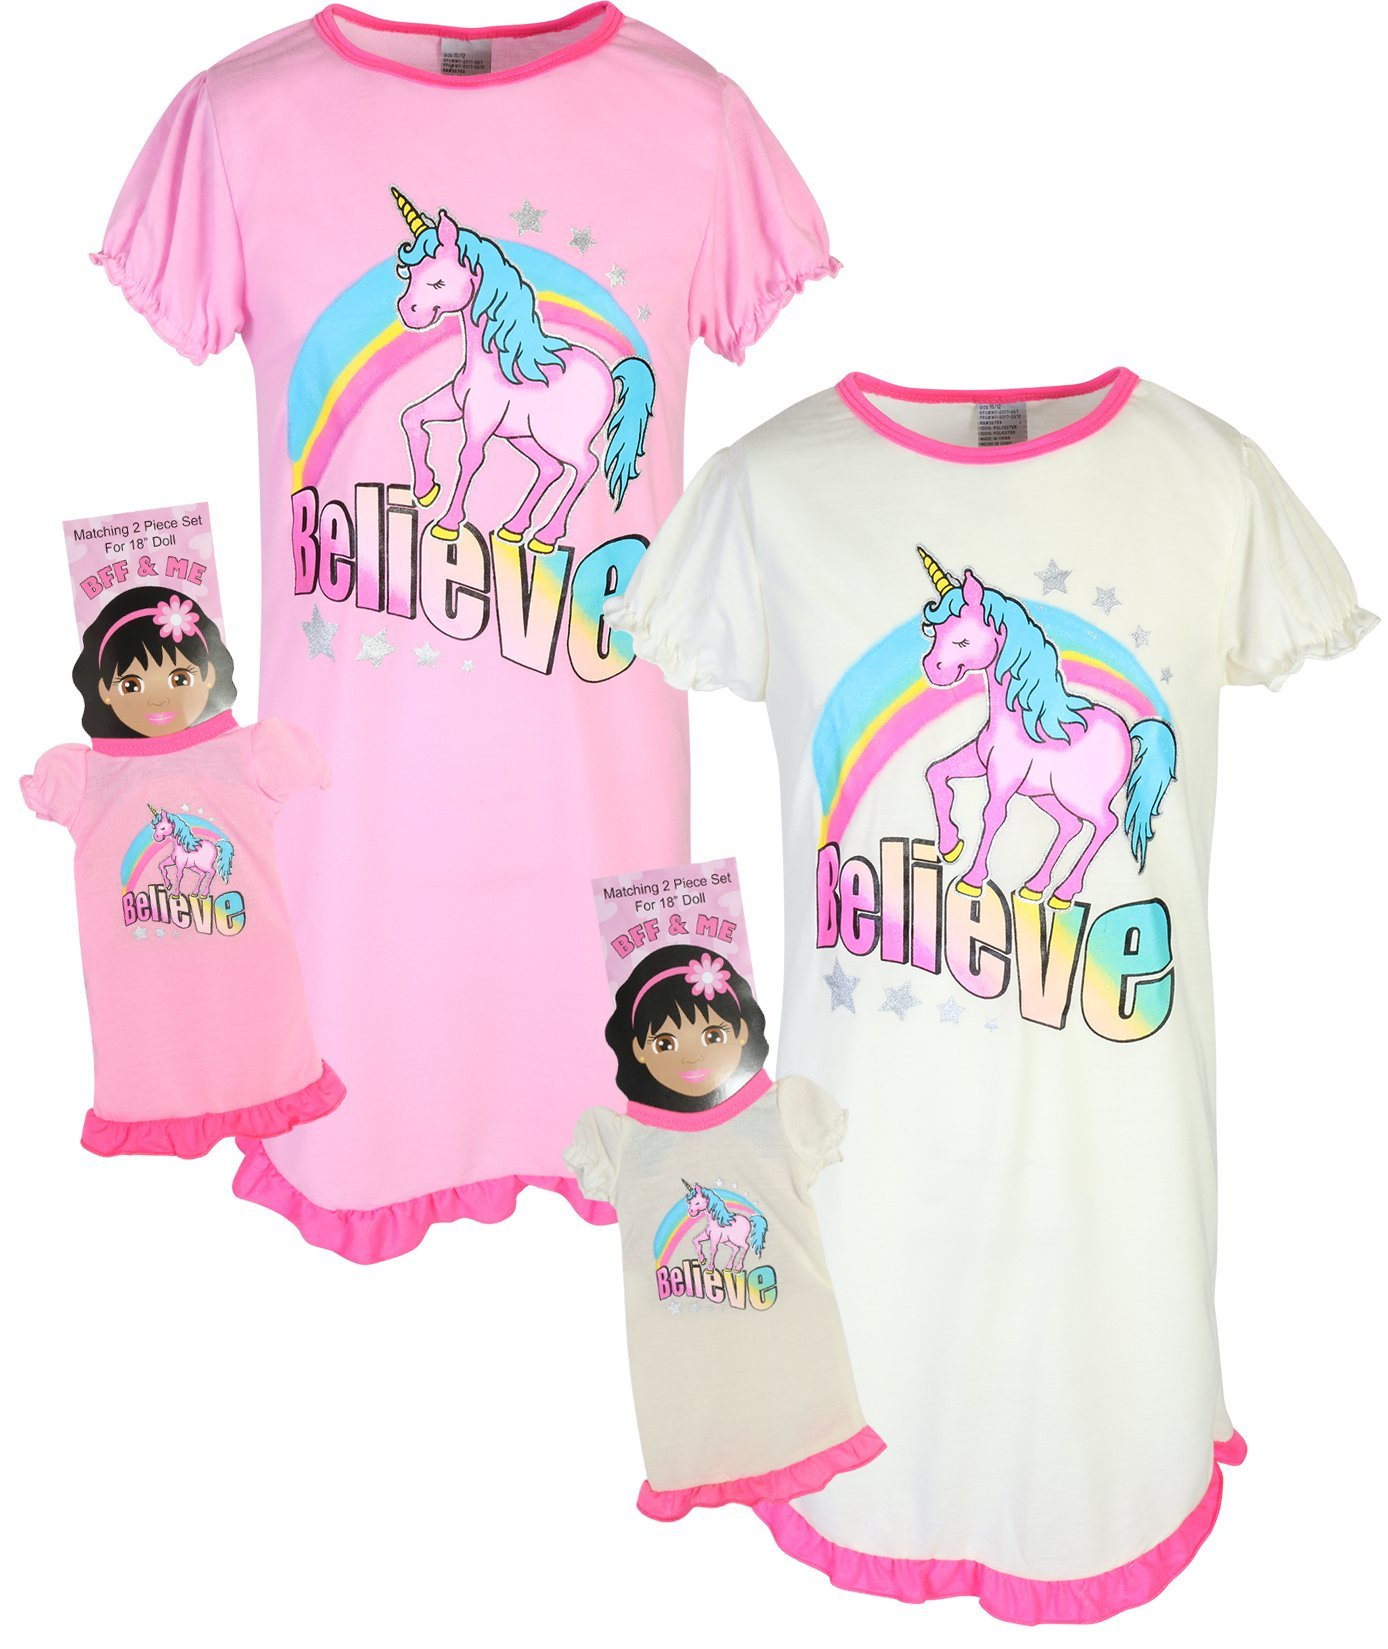 BFF & ME Girls Nightgown Pajama Set with Matching Doll Pajama (2 Pack), Unicorn, Size 7/8' by BFF & ME